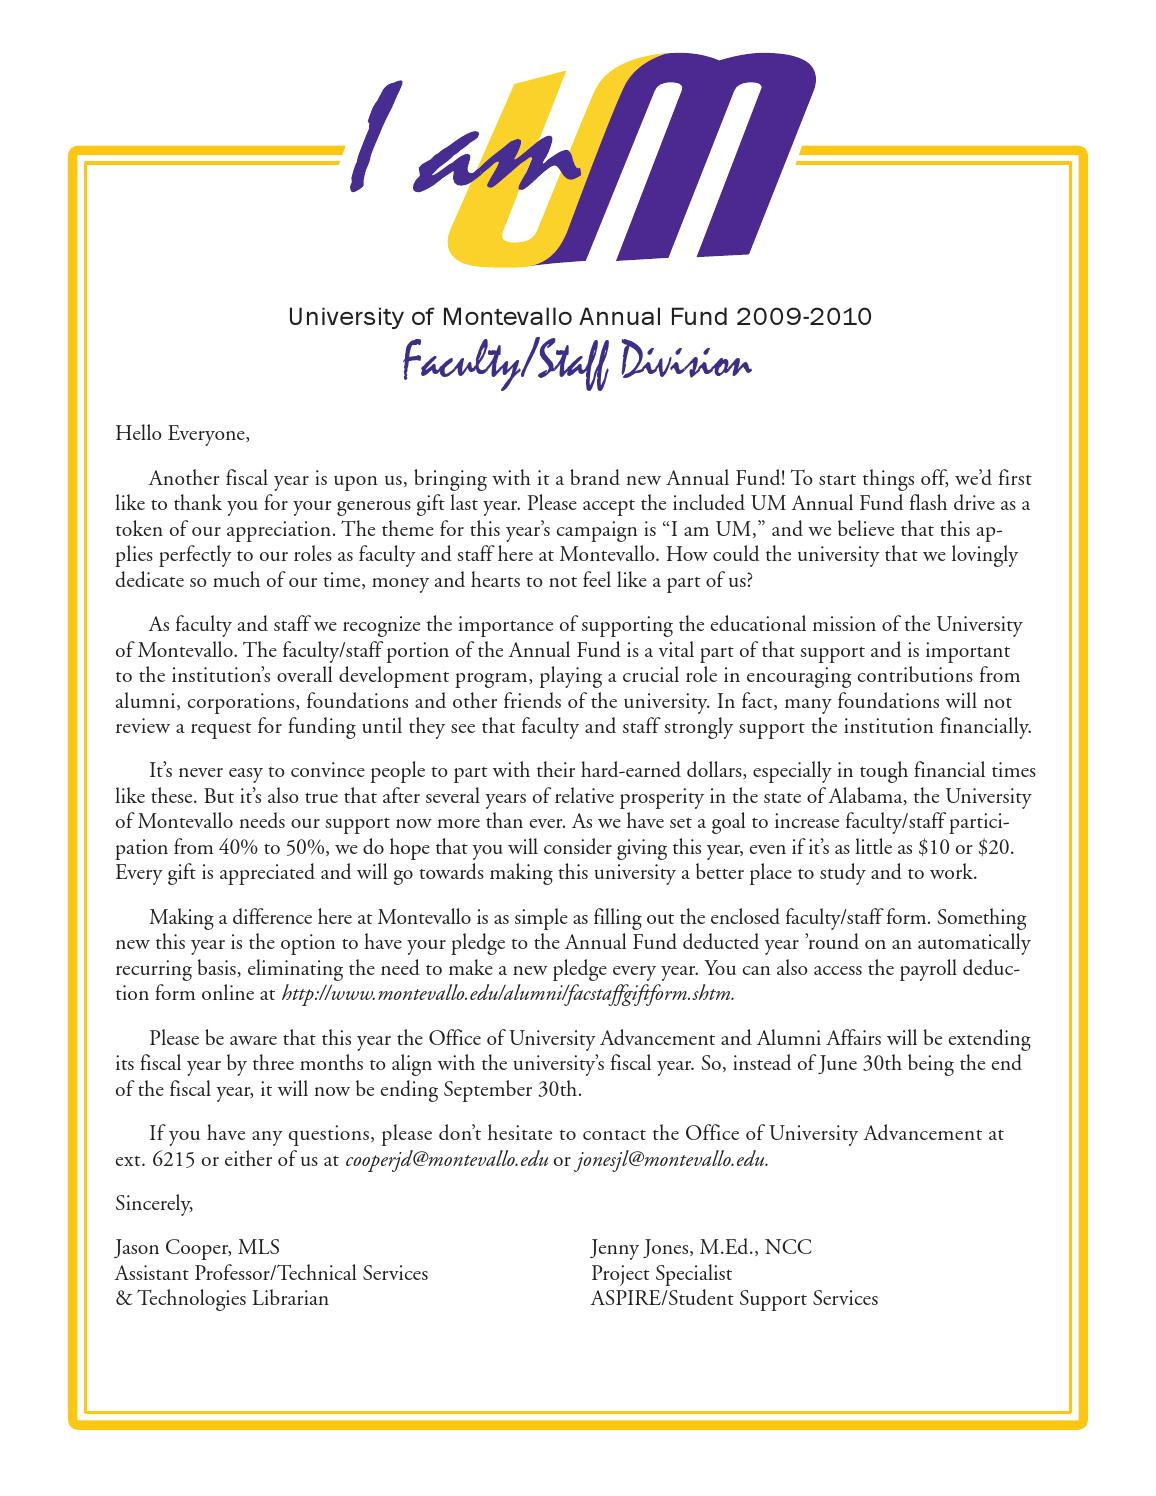 annual fund letter by university of montevallo